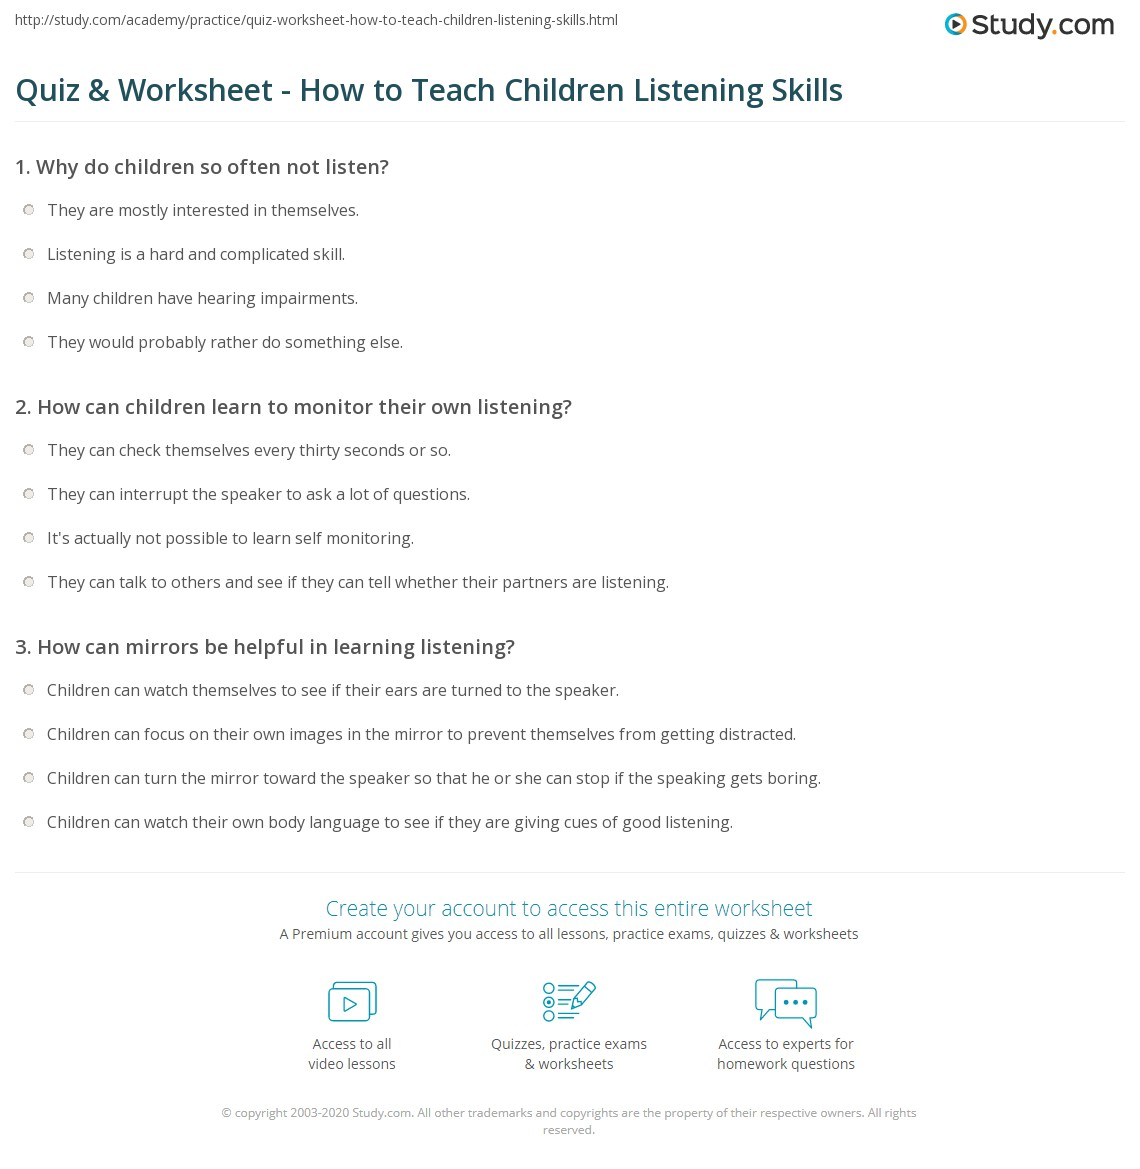 worksheet Body Language Worksheets listening skills worksheets abitlikethis quiz amp worksheet how to teach children study com